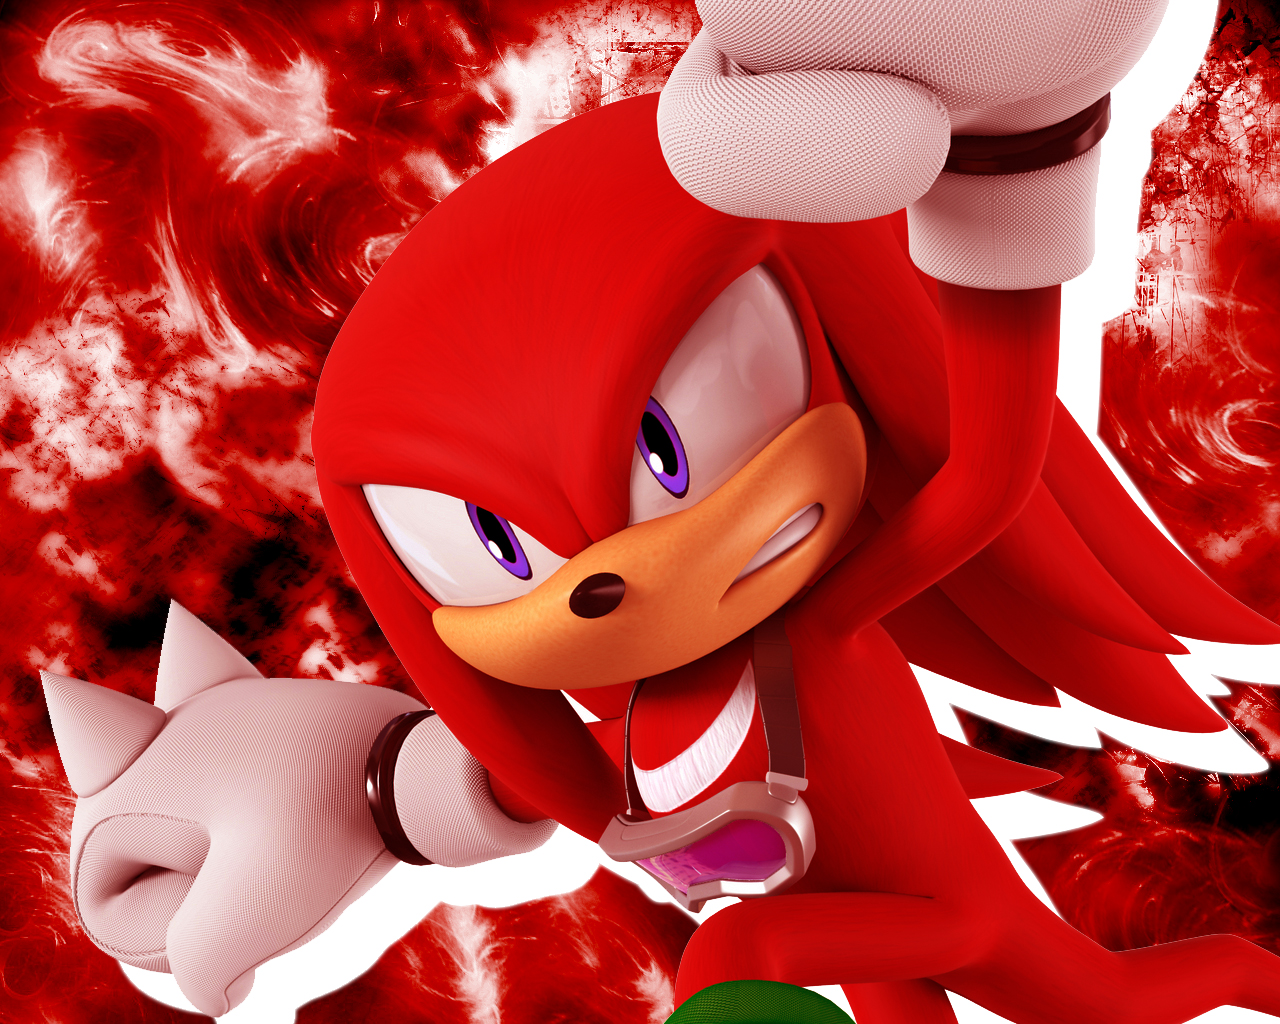 Knuckles Doesn't Chuckle With DEATH BATTLE! by Strunton on